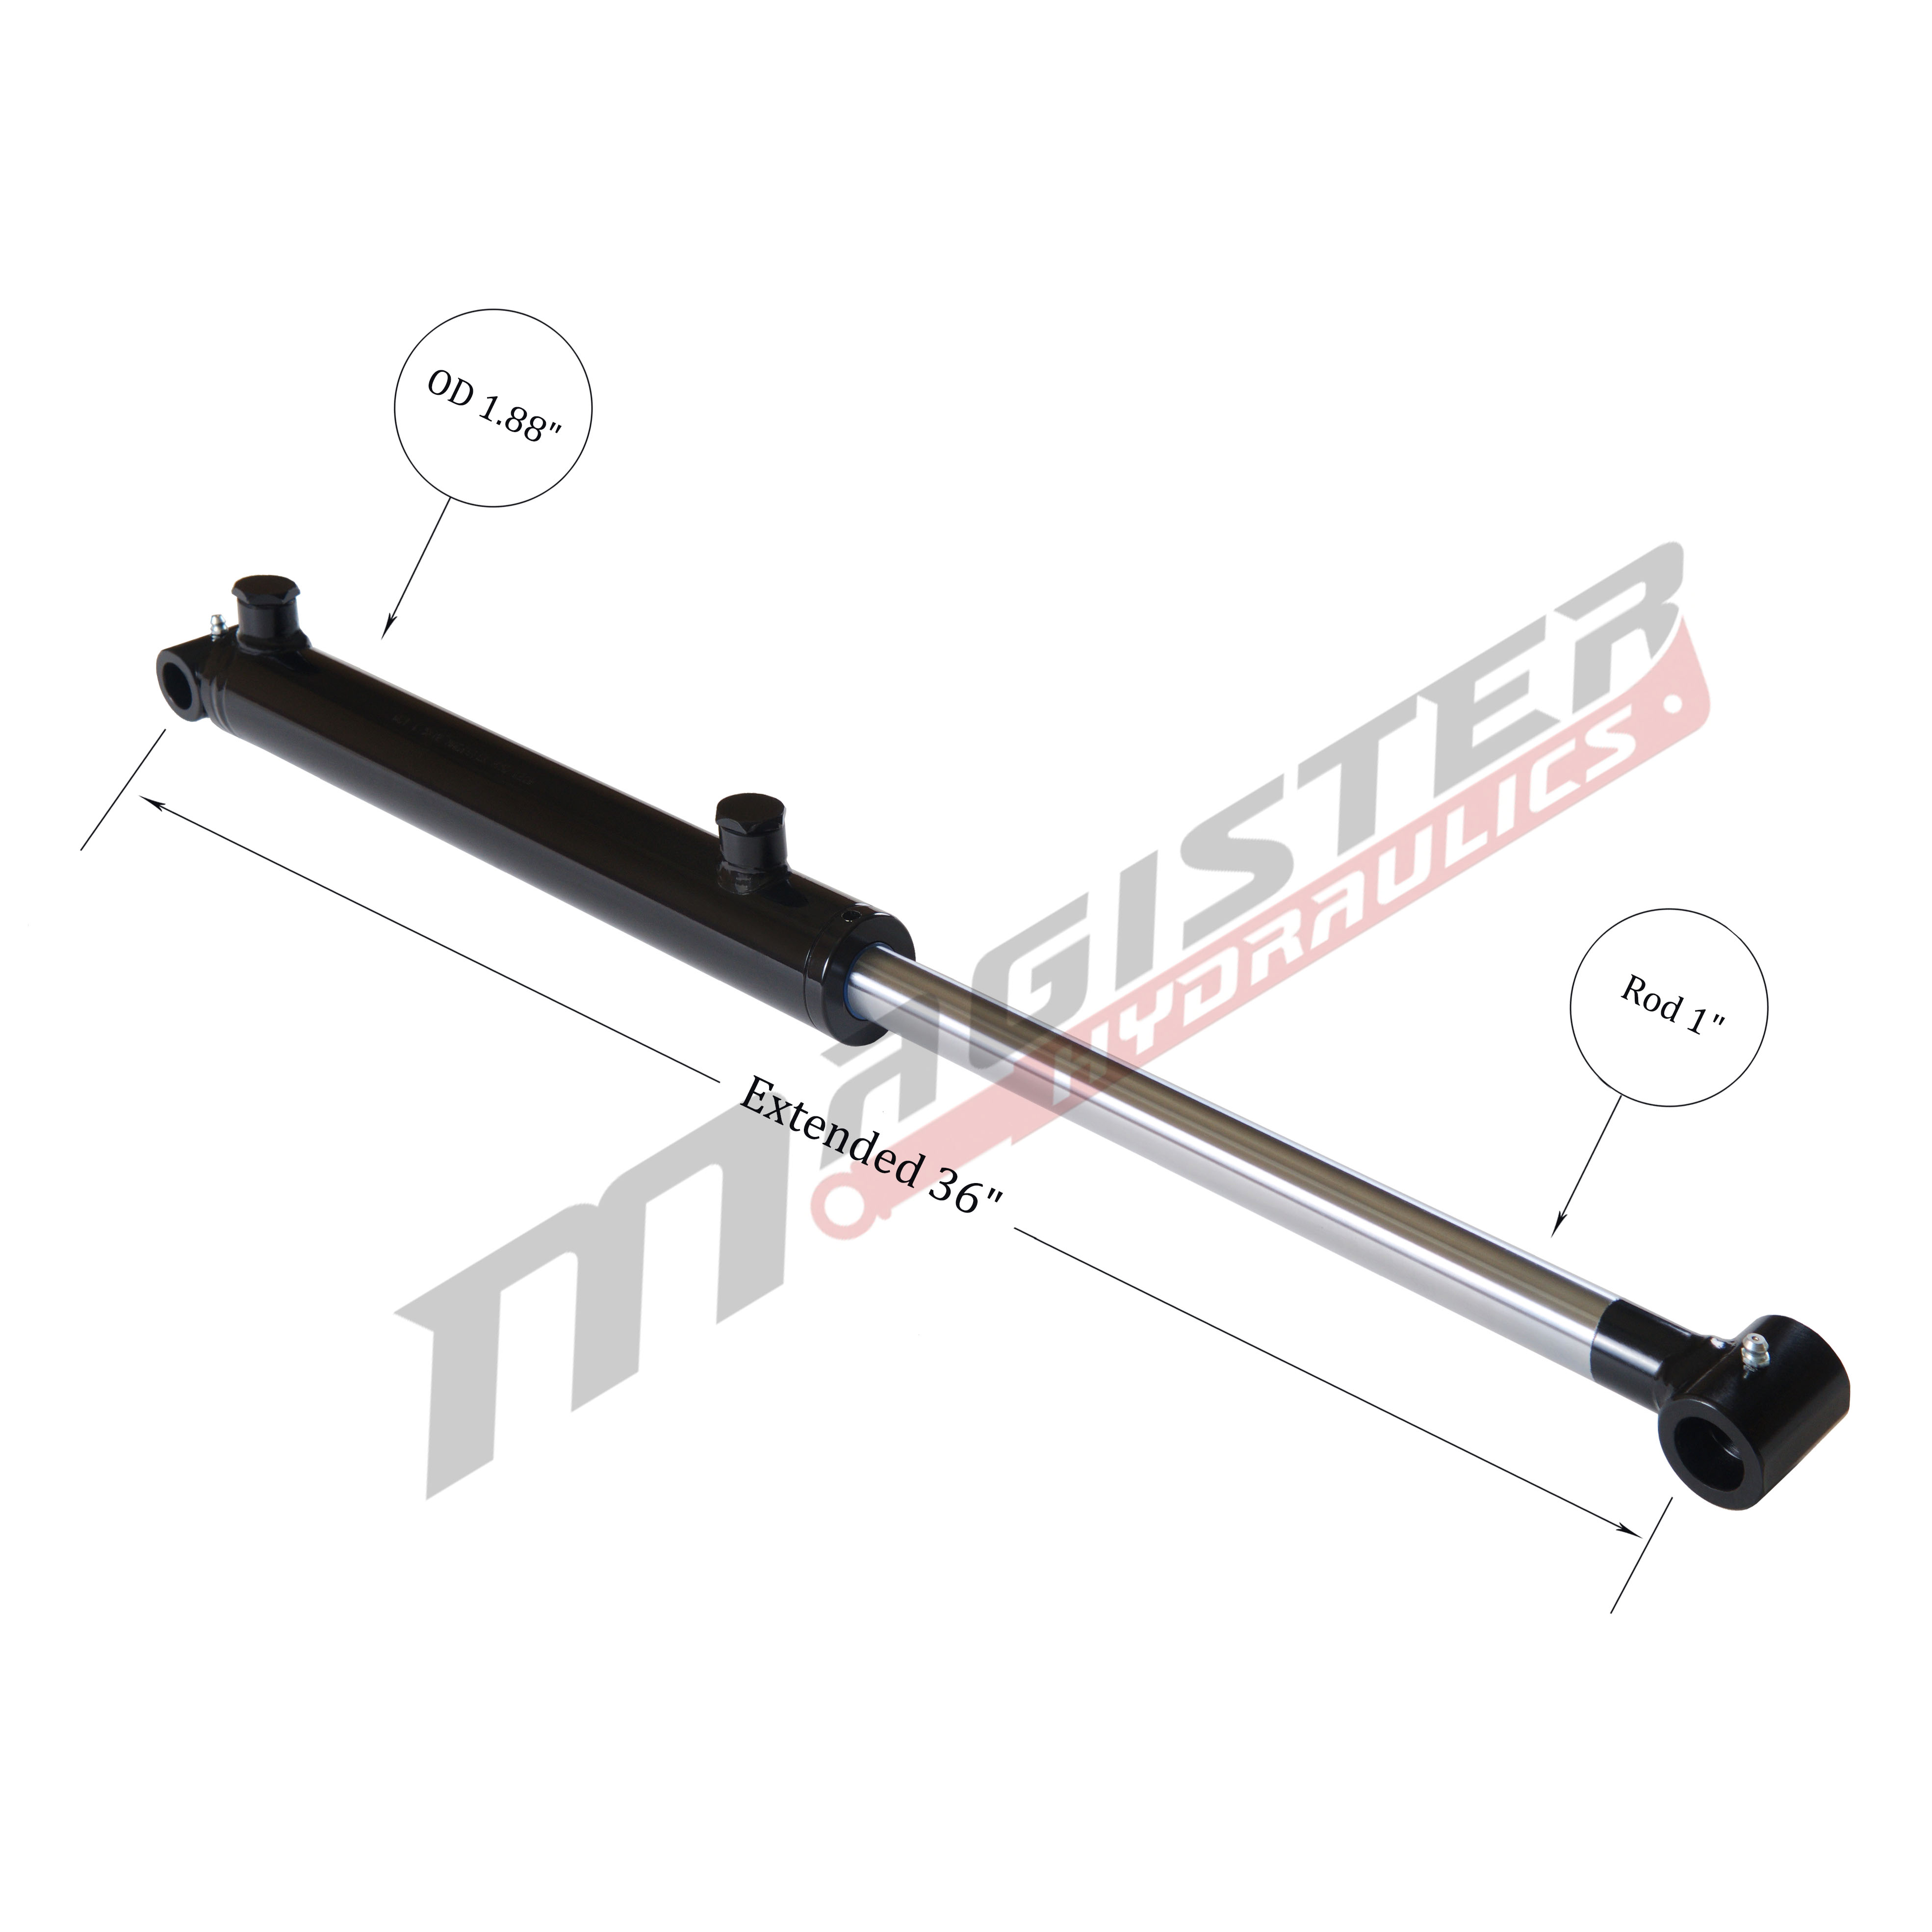 1.5 bore x 14 stroke hydraulic cylinder, welded cross tube double acting cylinder | Magister Hydraulics